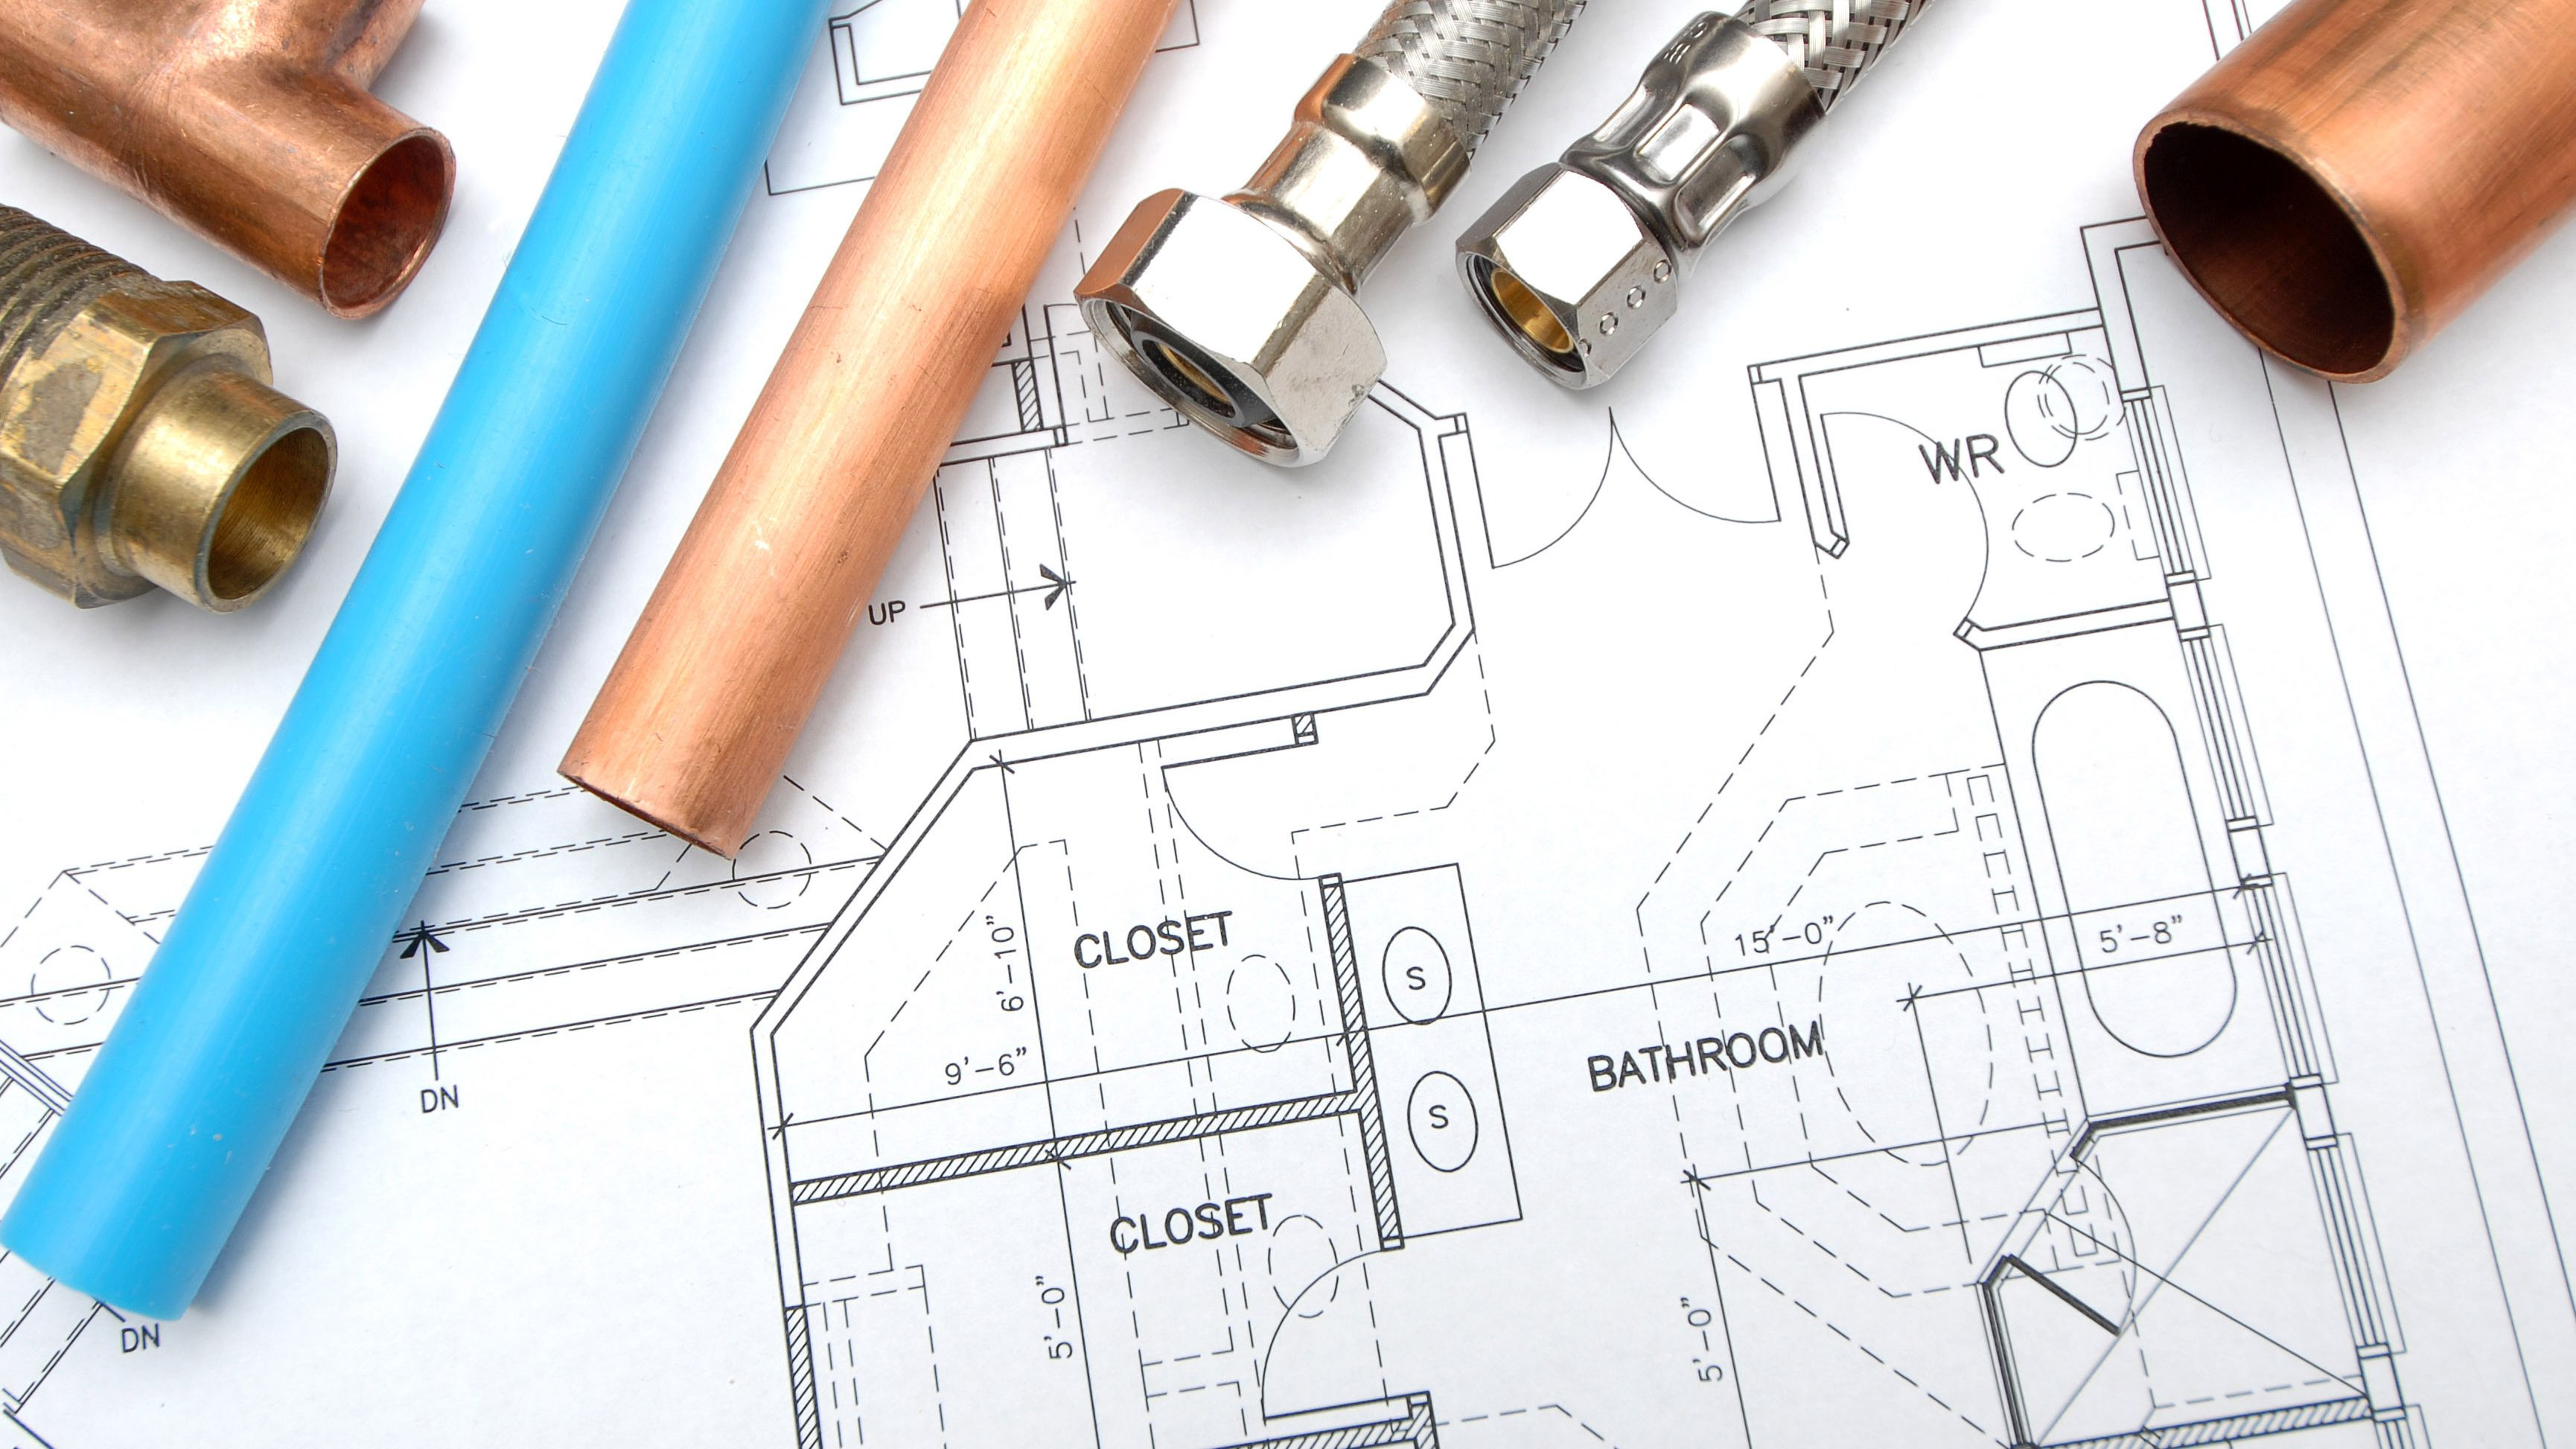 Rough In Plumbing Dimensions For The Bathroom